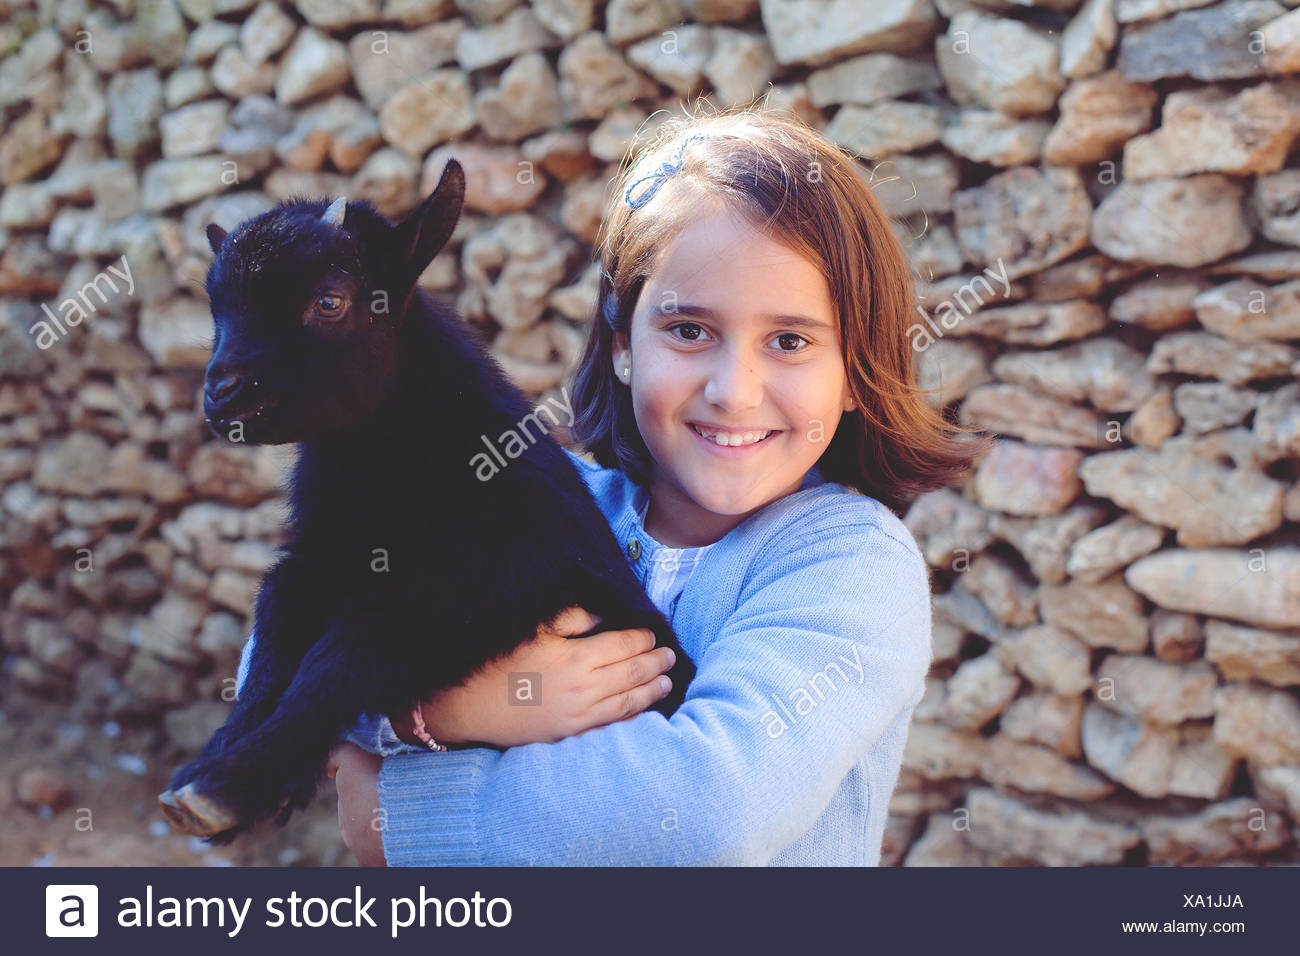 Portrait of Girl (6-7) with pet goat Photo Stock